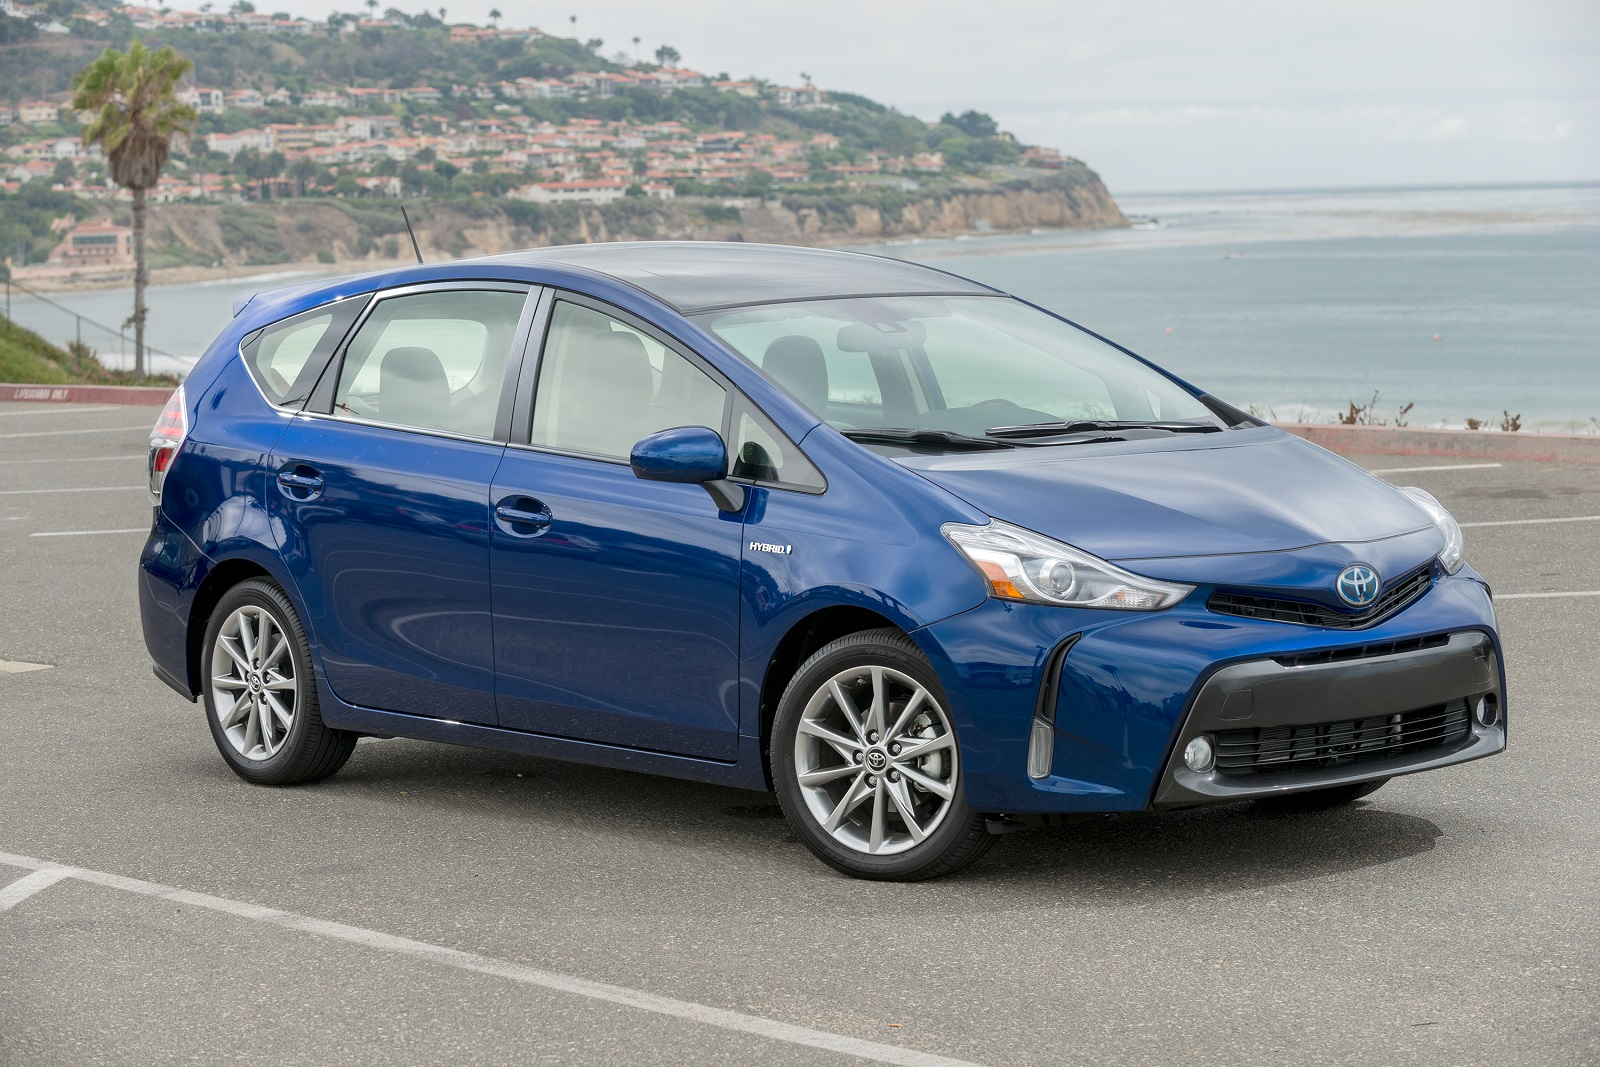 toyota prius family may shrink as low gas prices dim allure. Black Bedroom Furniture Sets. Home Design Ideas